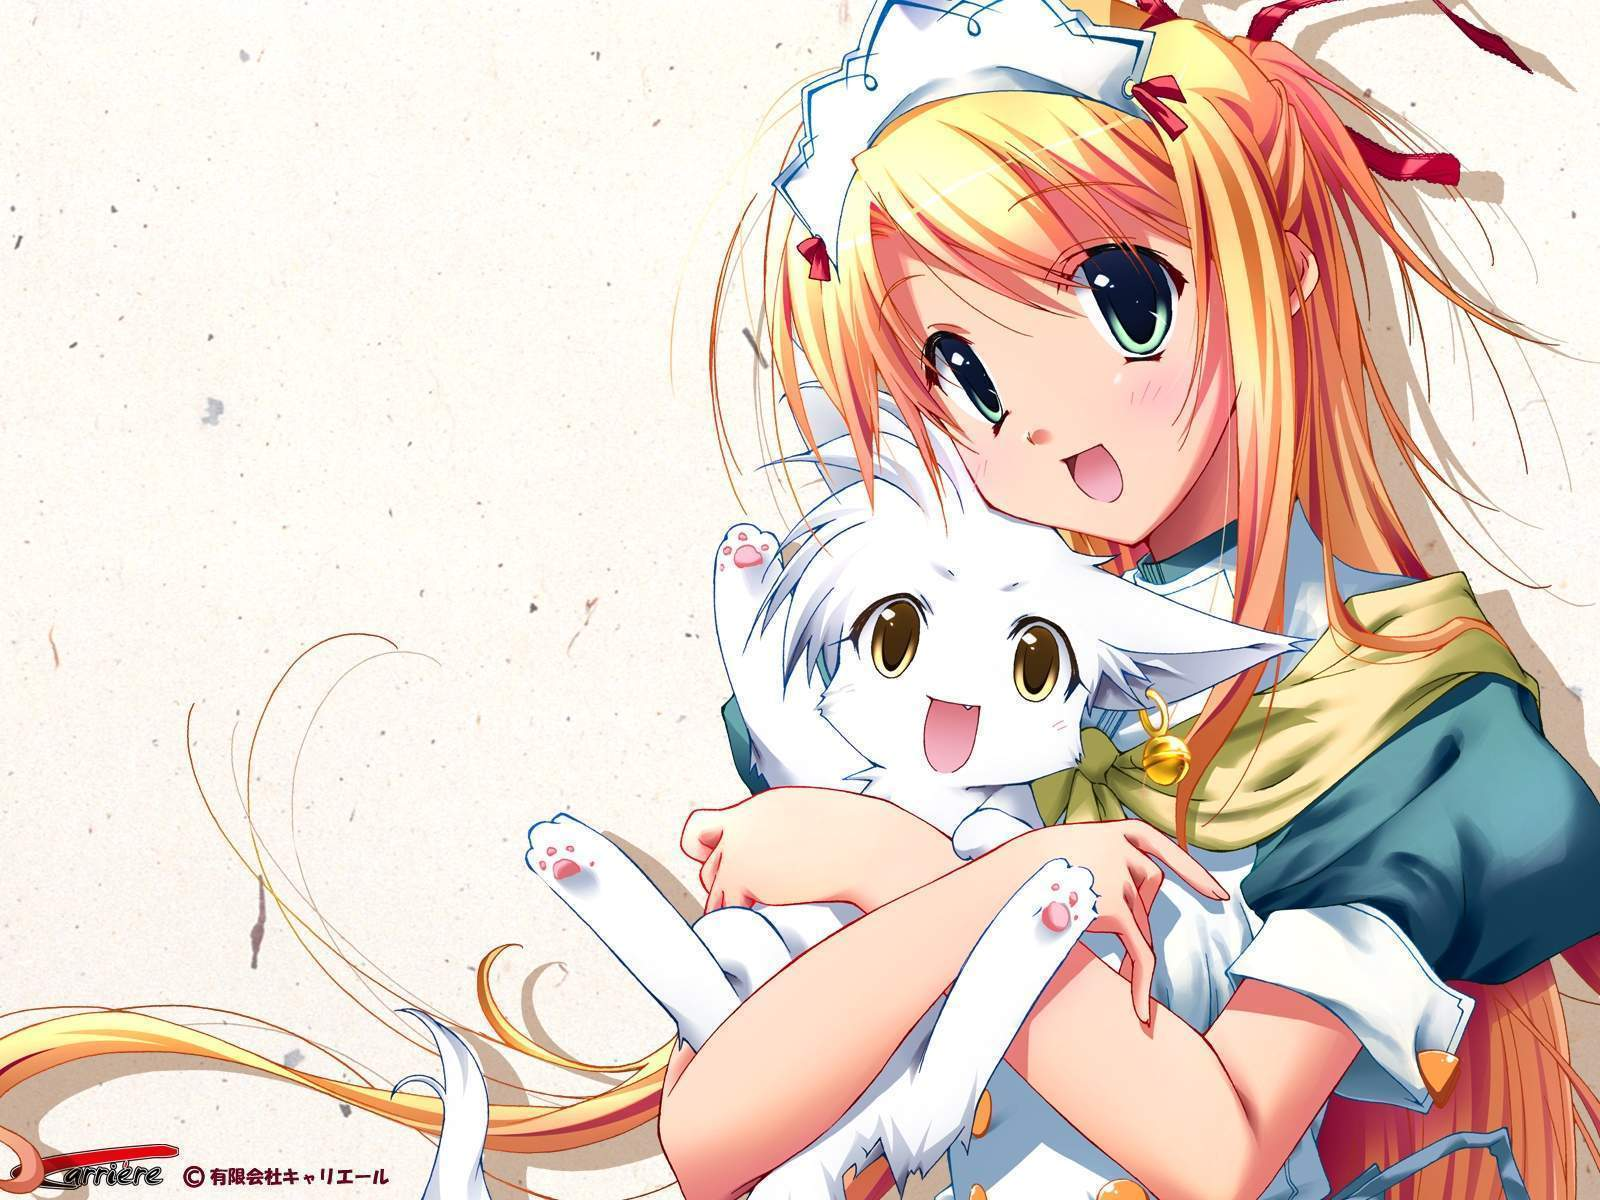 anime girl with catkitten   Star Light Wallpaper 24661414 1600x1200